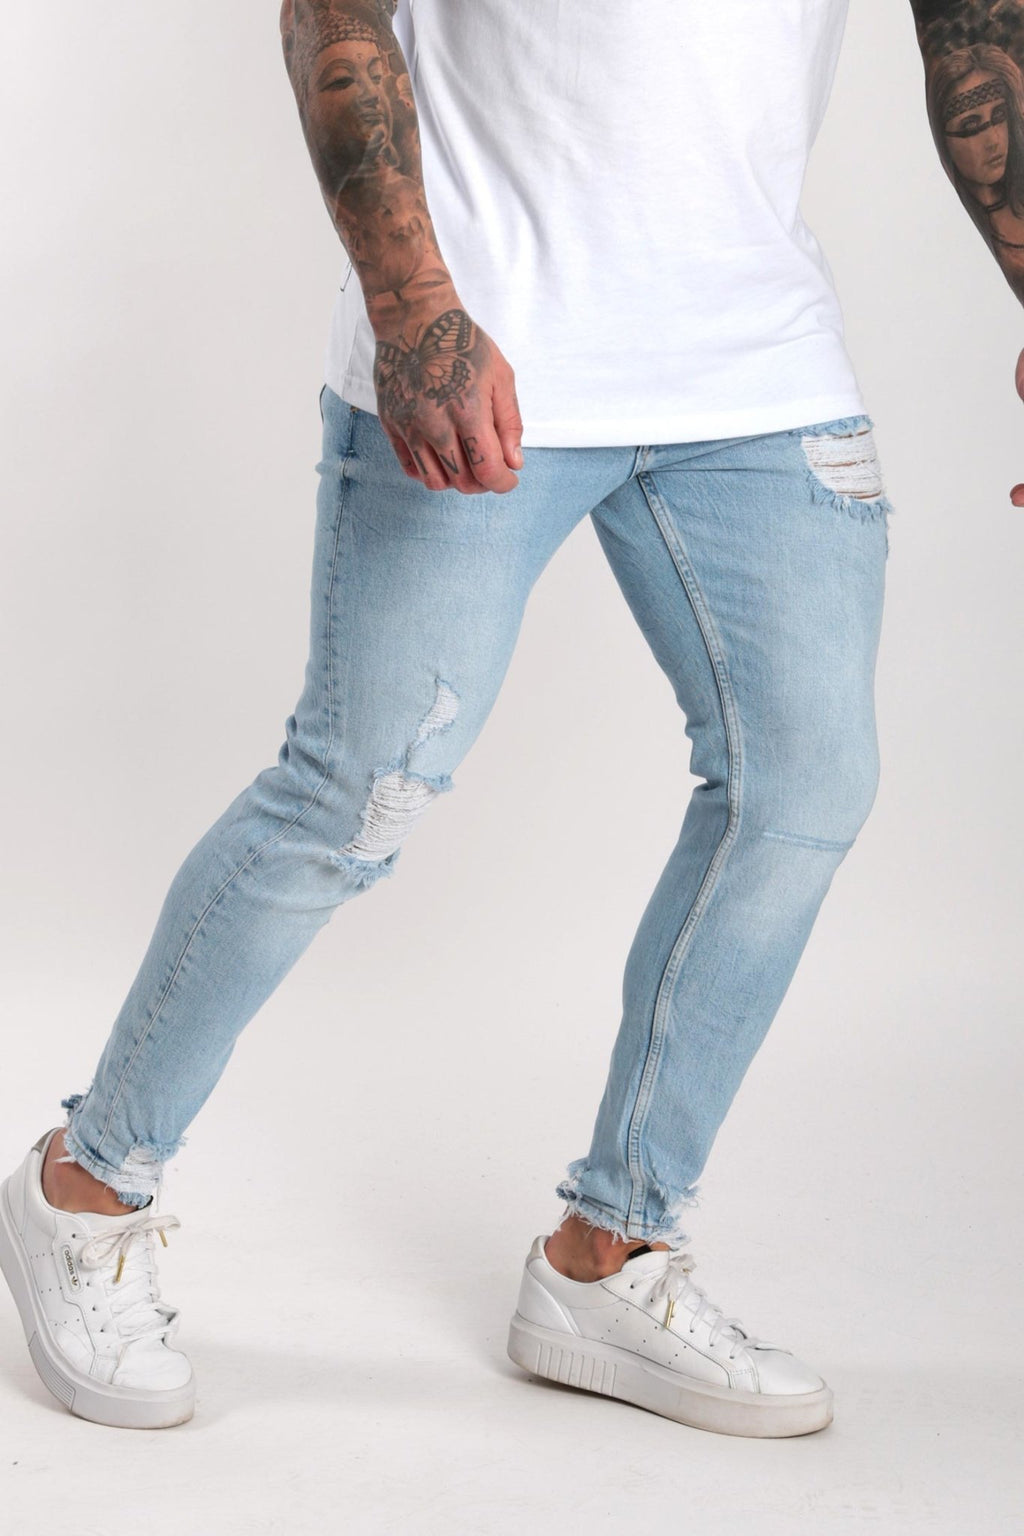 Rose London Slim Rip & Repair Denim Jeans Light Wash - Rose London